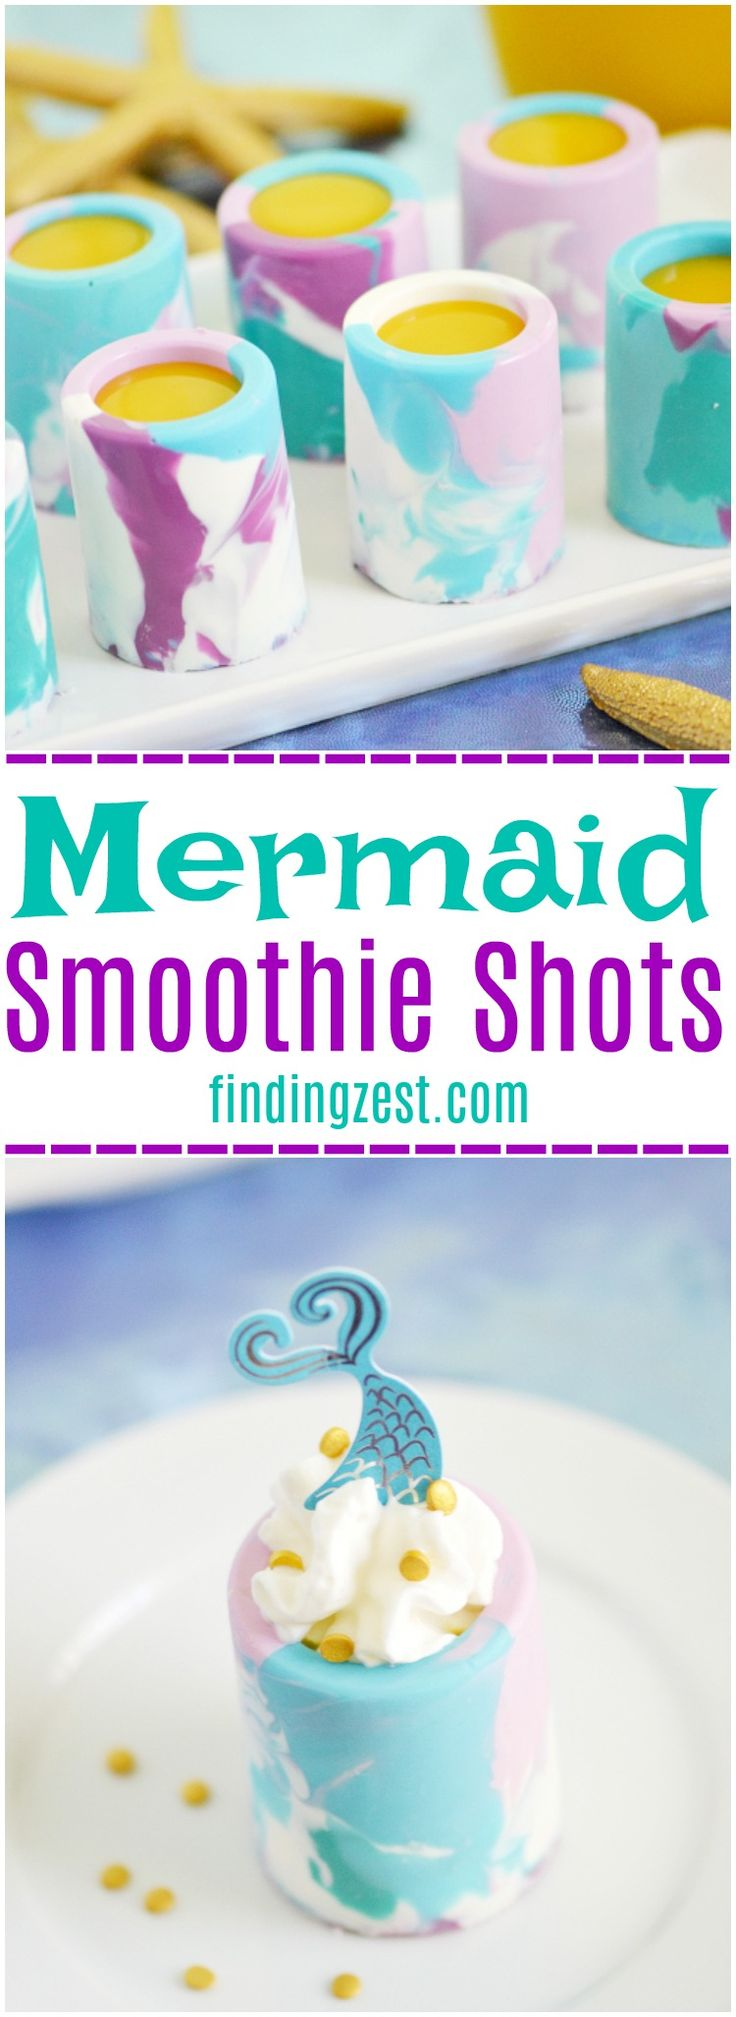 Surprise birthday party guests with these Mermaid Smoothie Shots! These marbled chocolate shot glasses are perfect for filling with your favorite tropical fruit smoothies. These kid-friendly shots work great for any Under the Sea themed party! - from findingzest.com